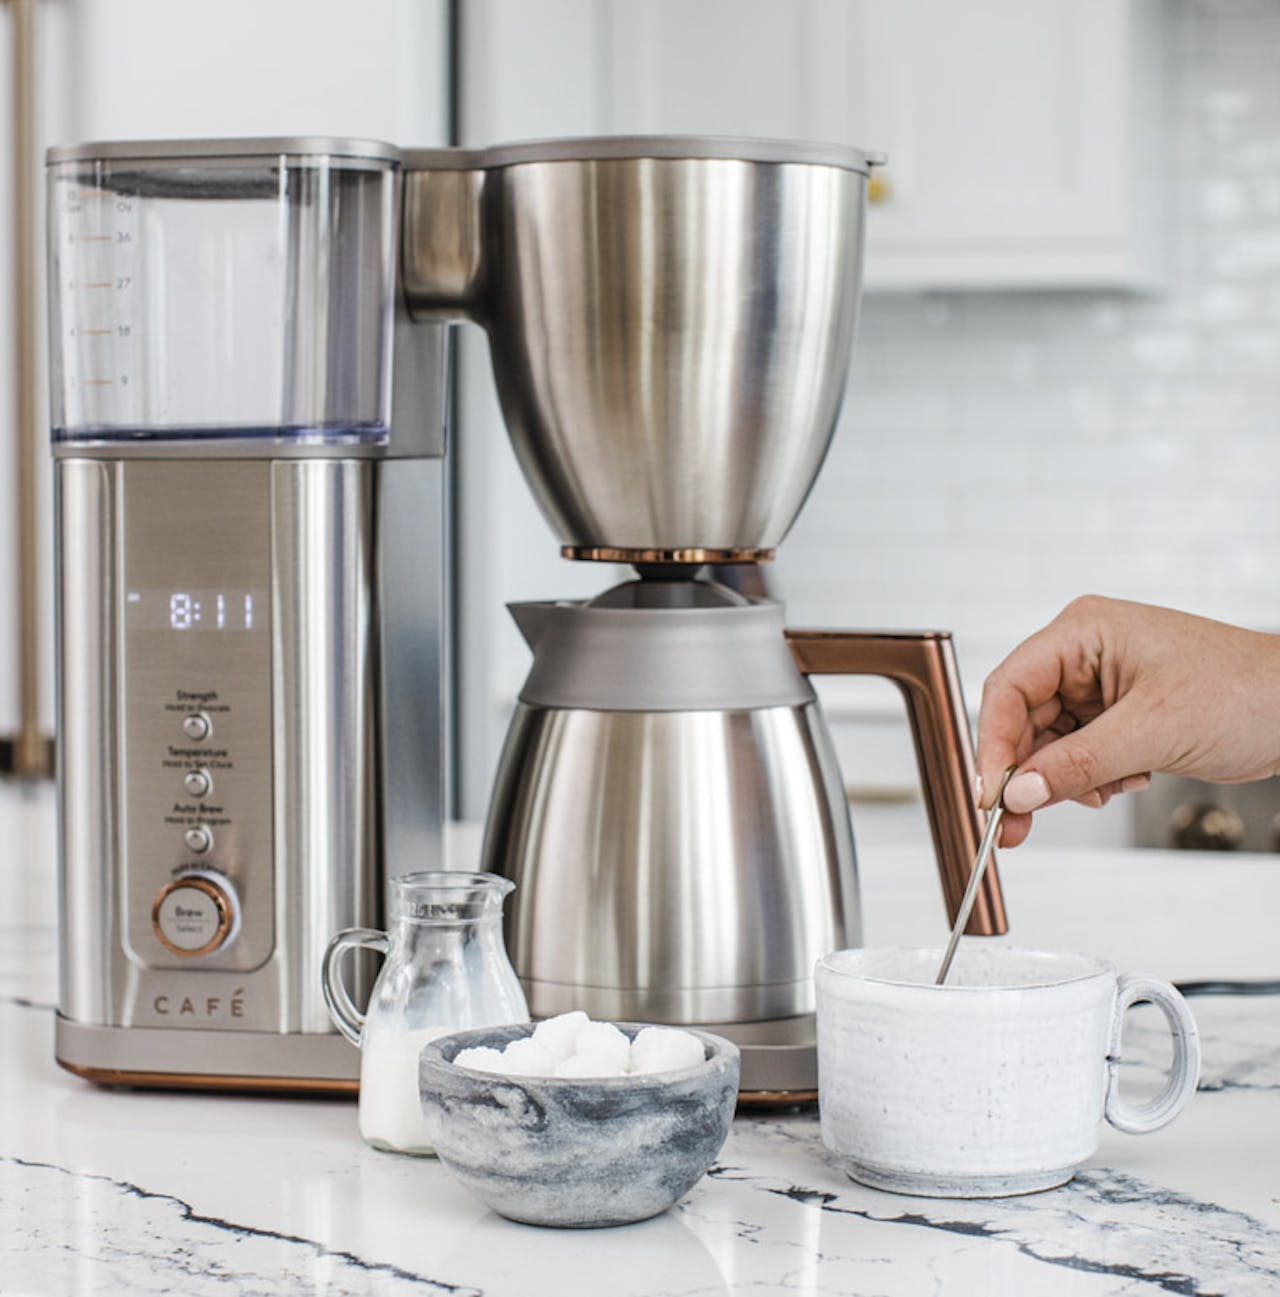 Cafe Stainless coffee maker